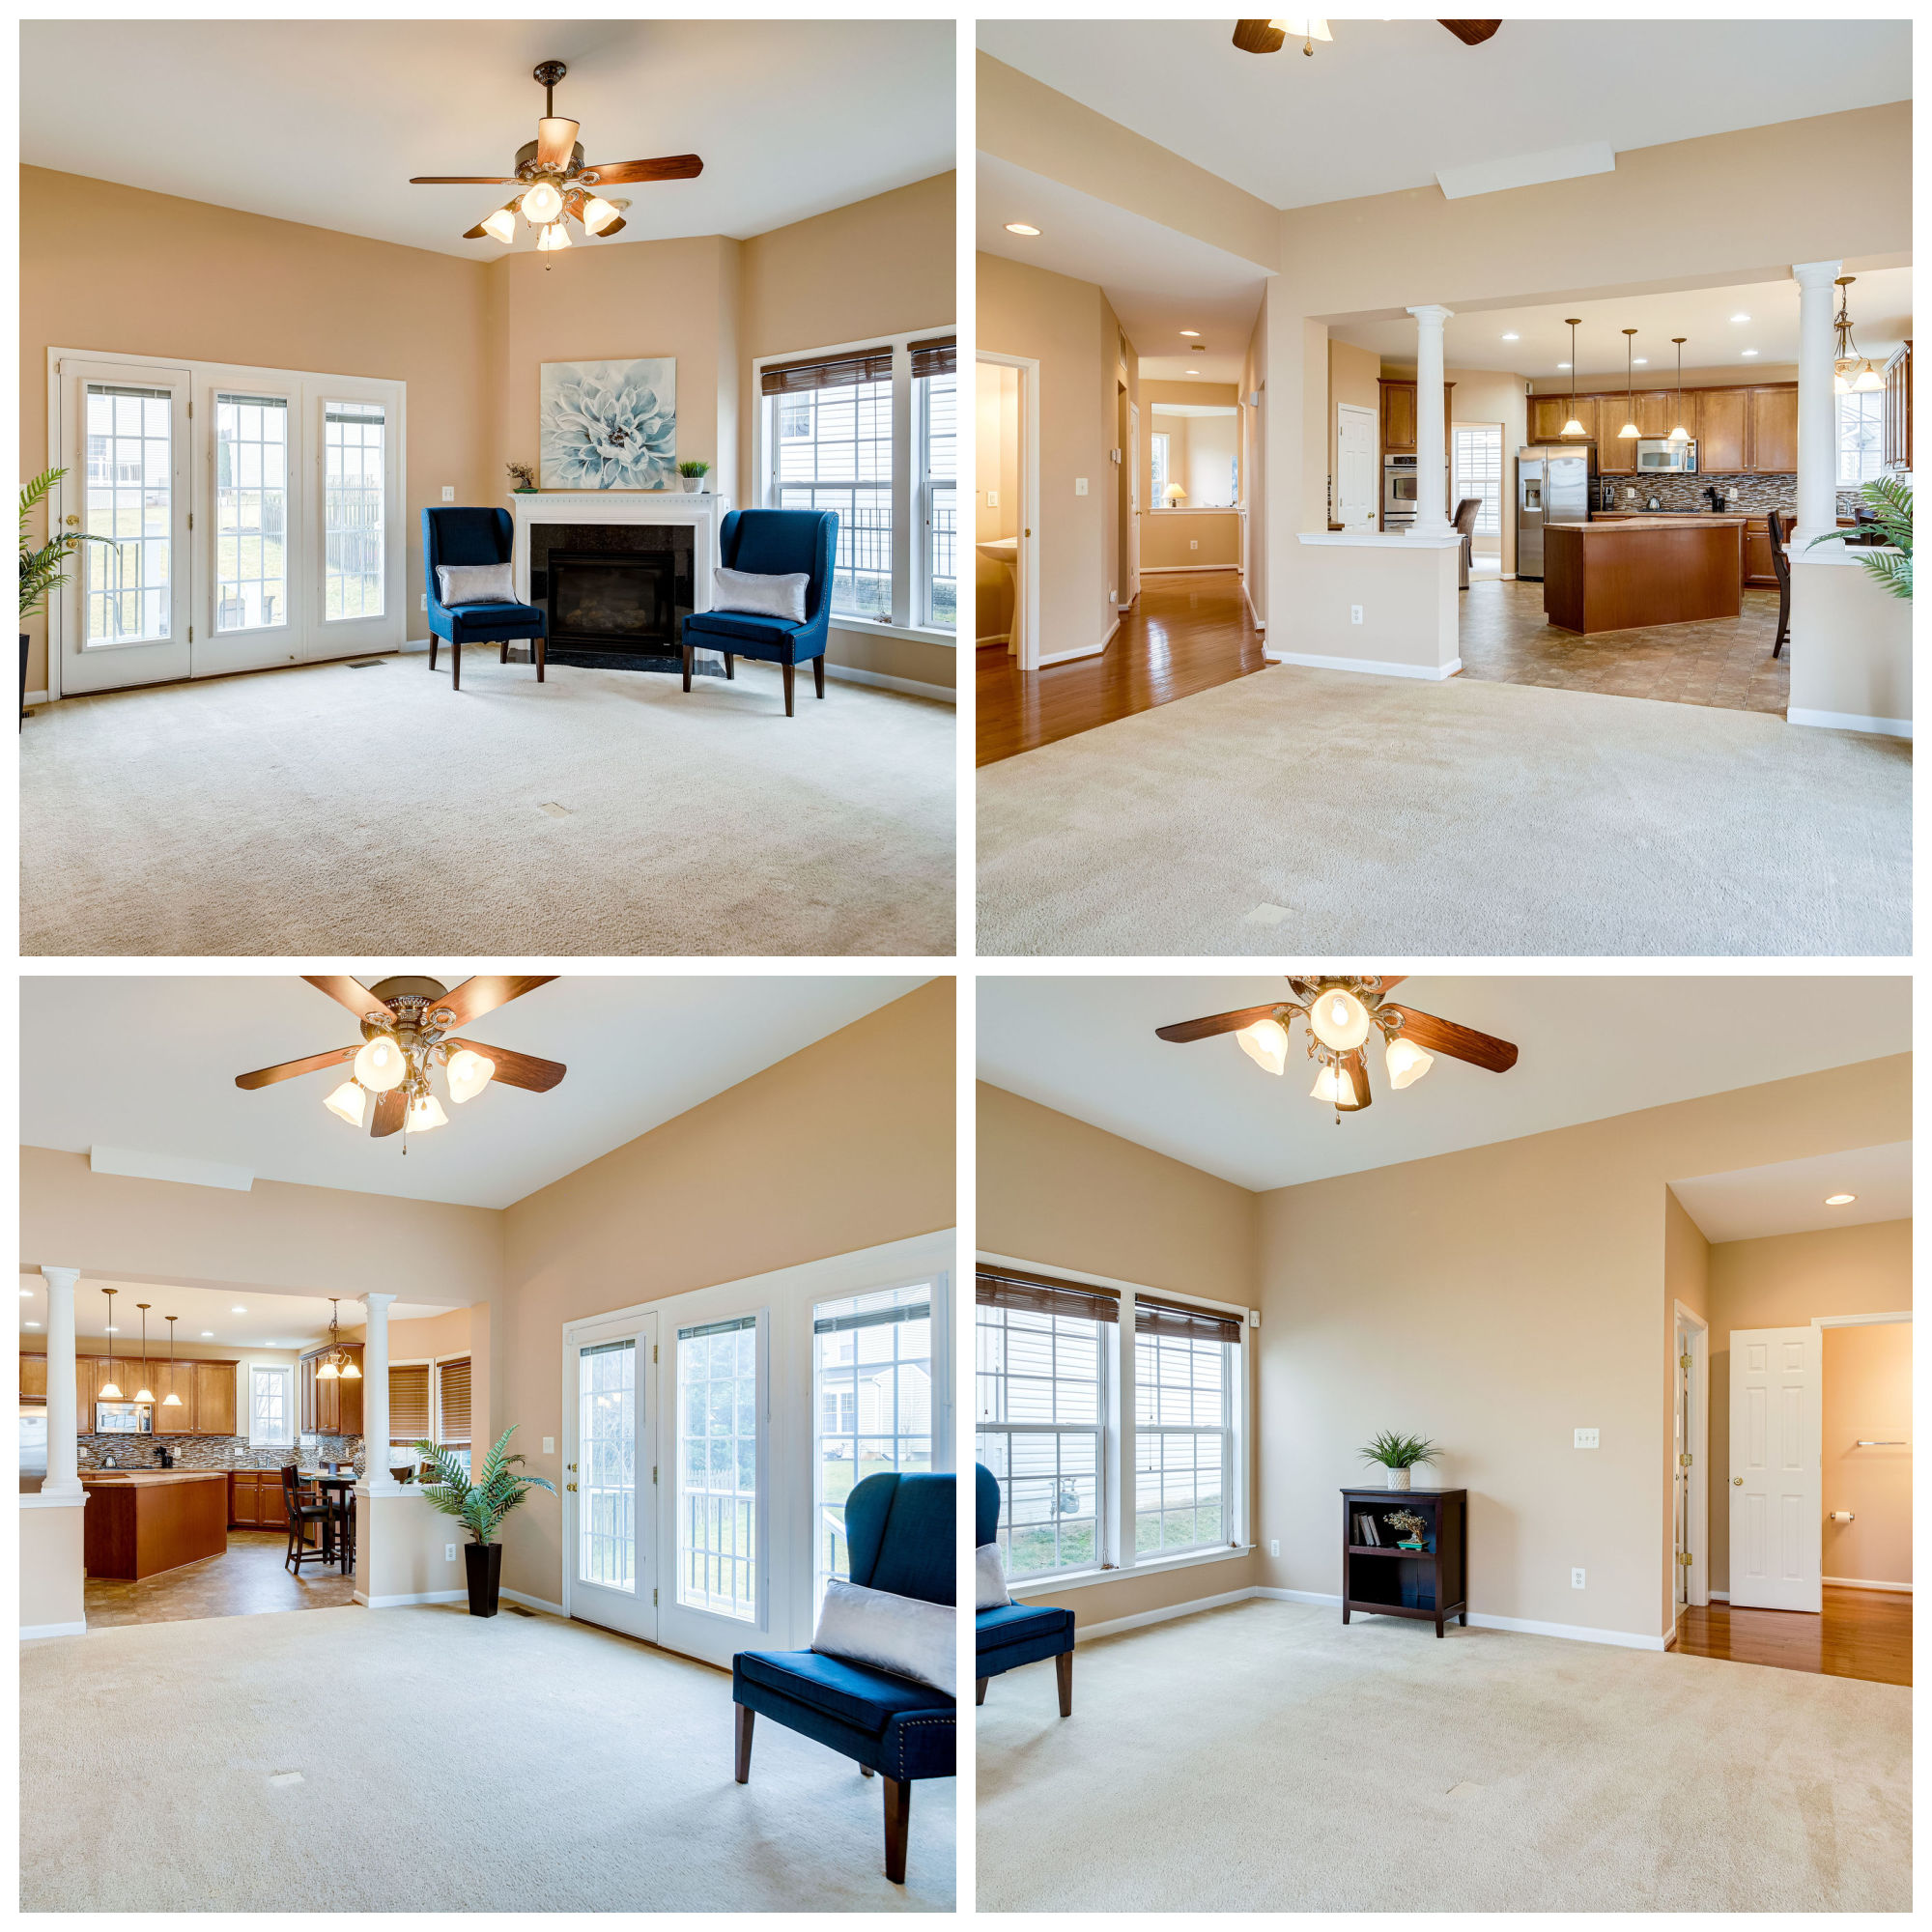 9036 Woodpecker Ct, Gainesville- Family Room